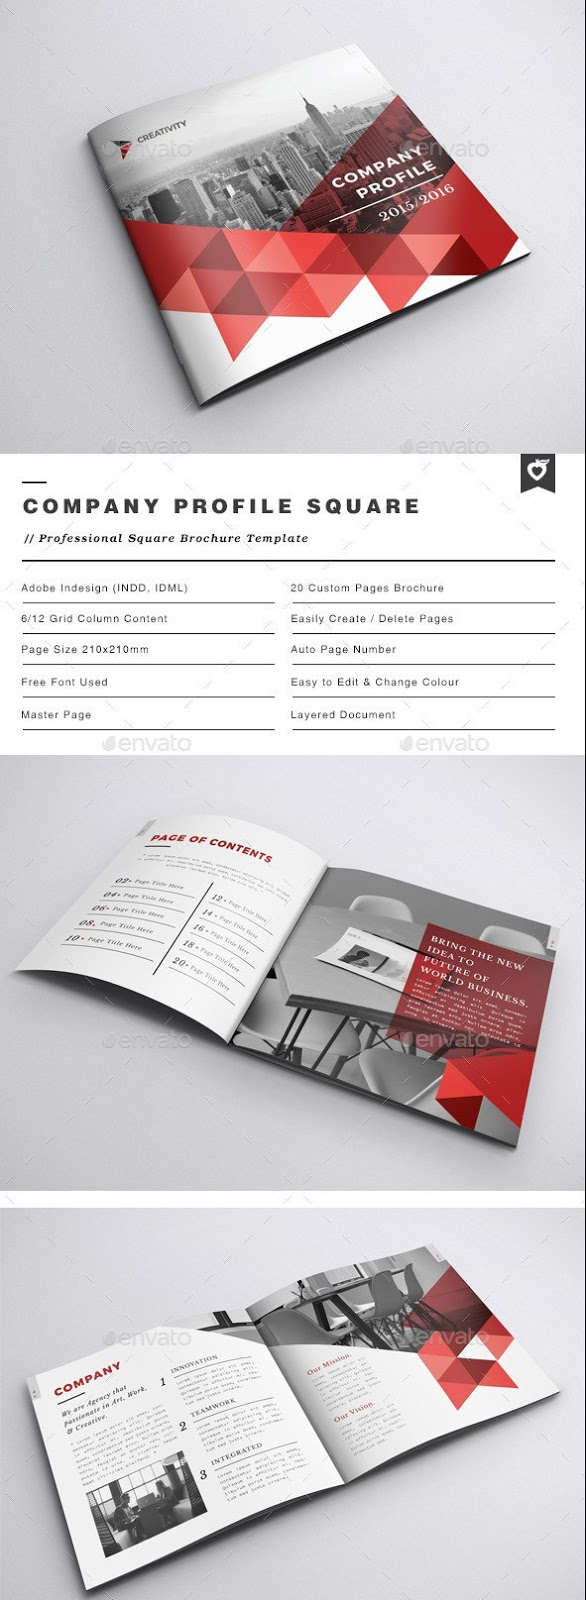 4 column brochure template - 100 free premium brochure templates photoshop psd